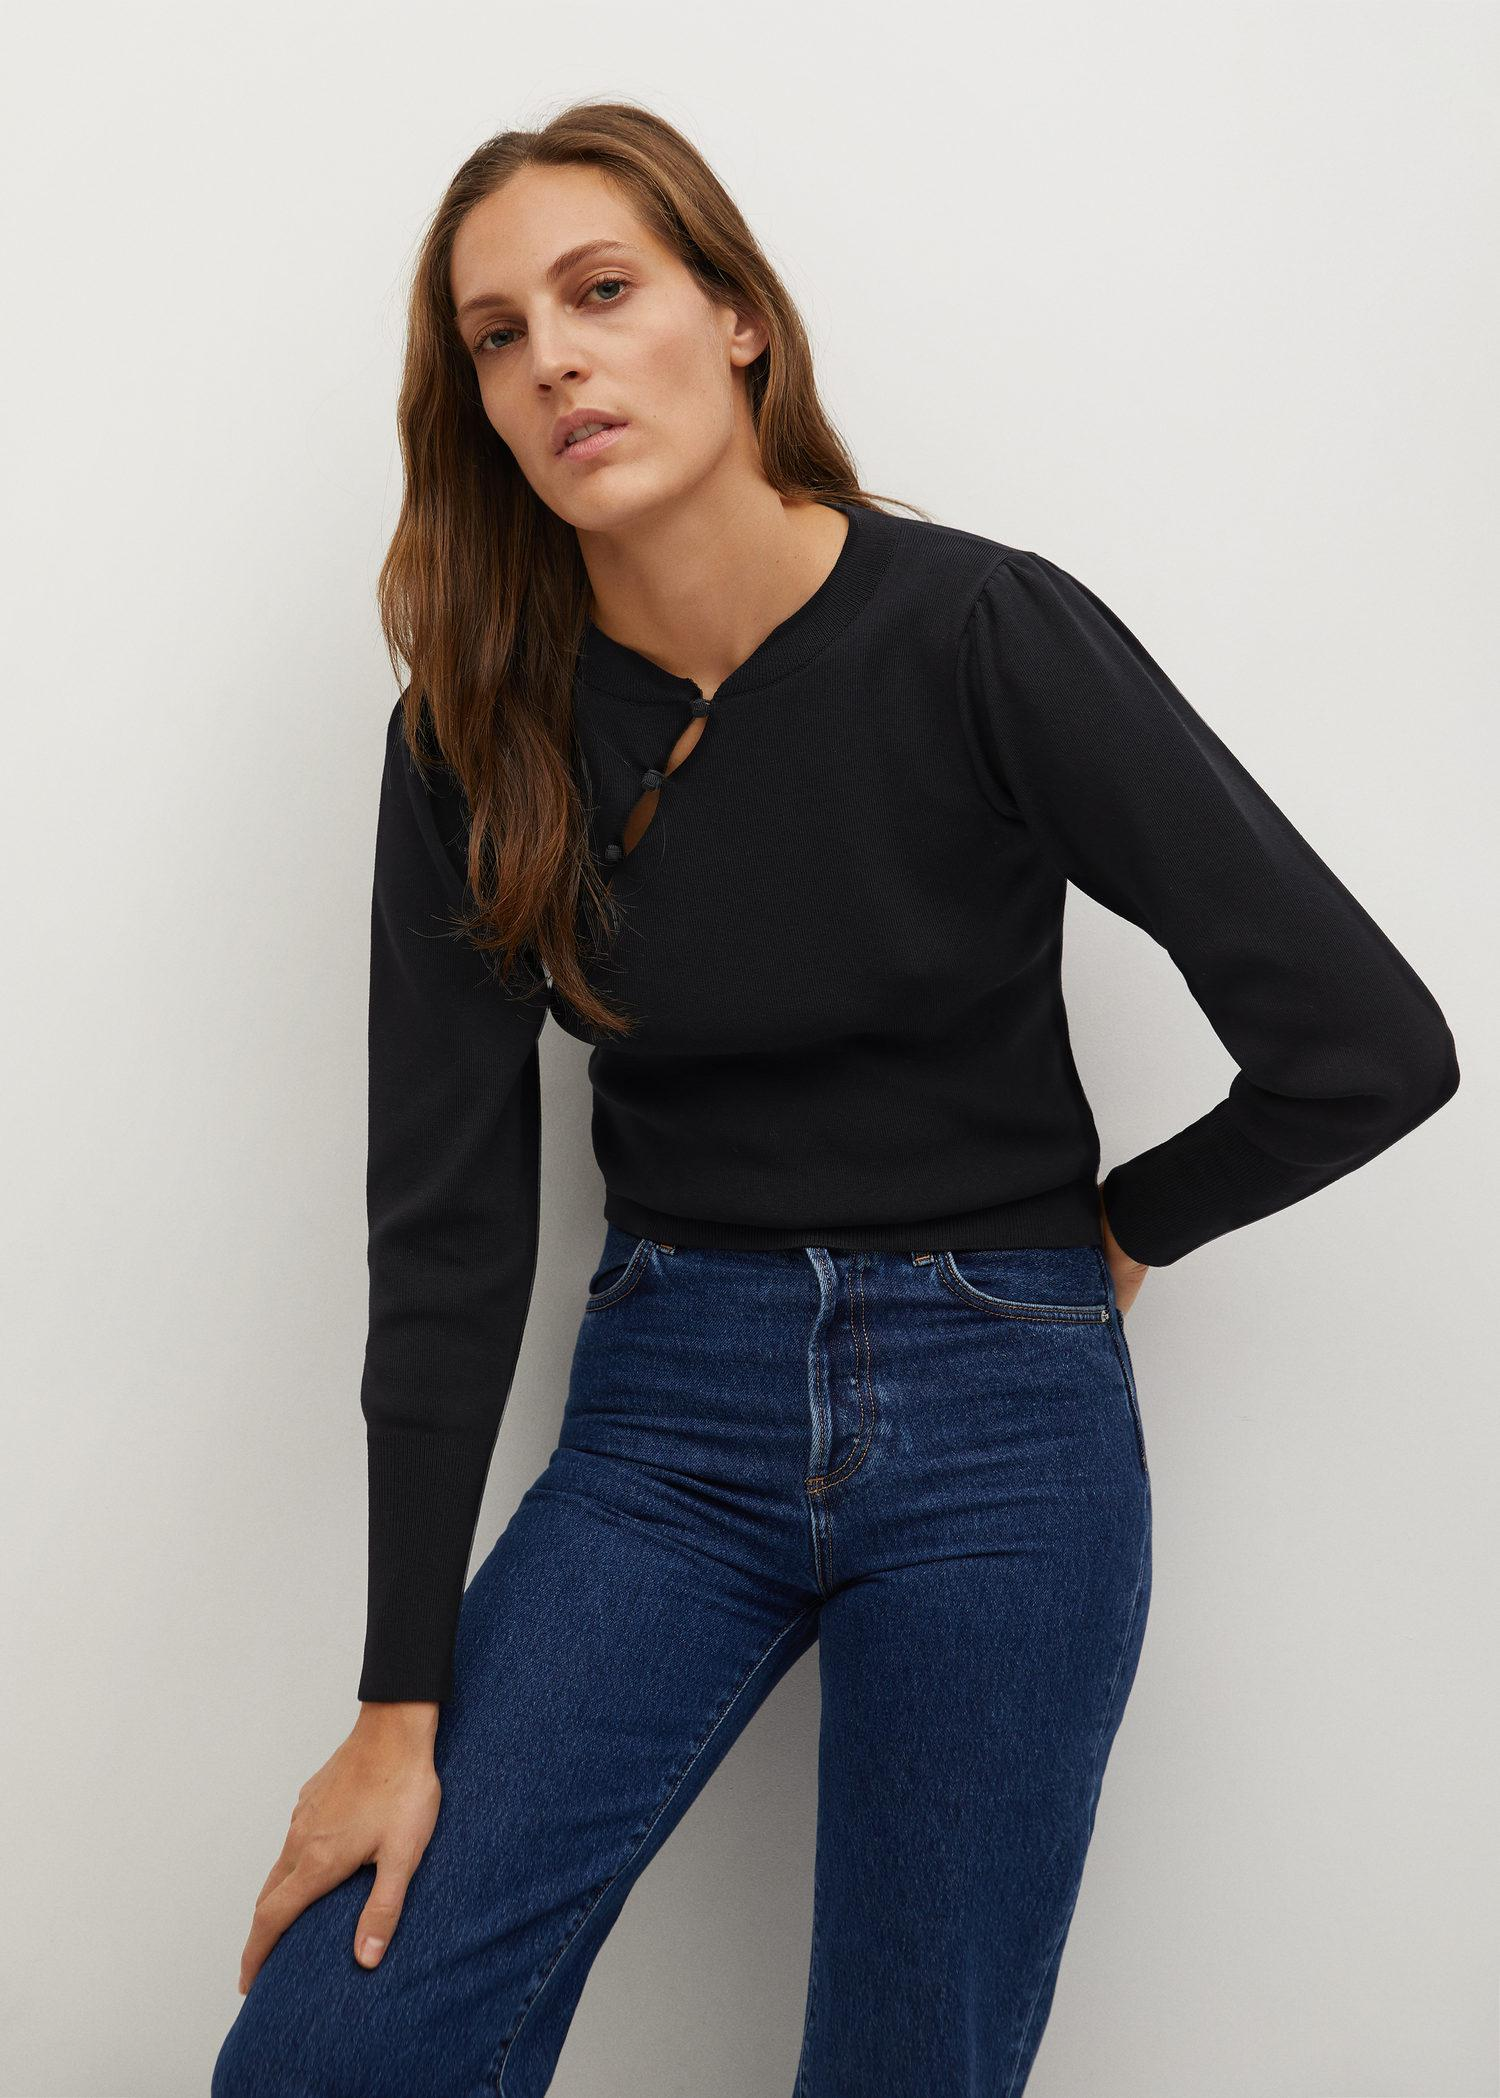 Sweater with side opening